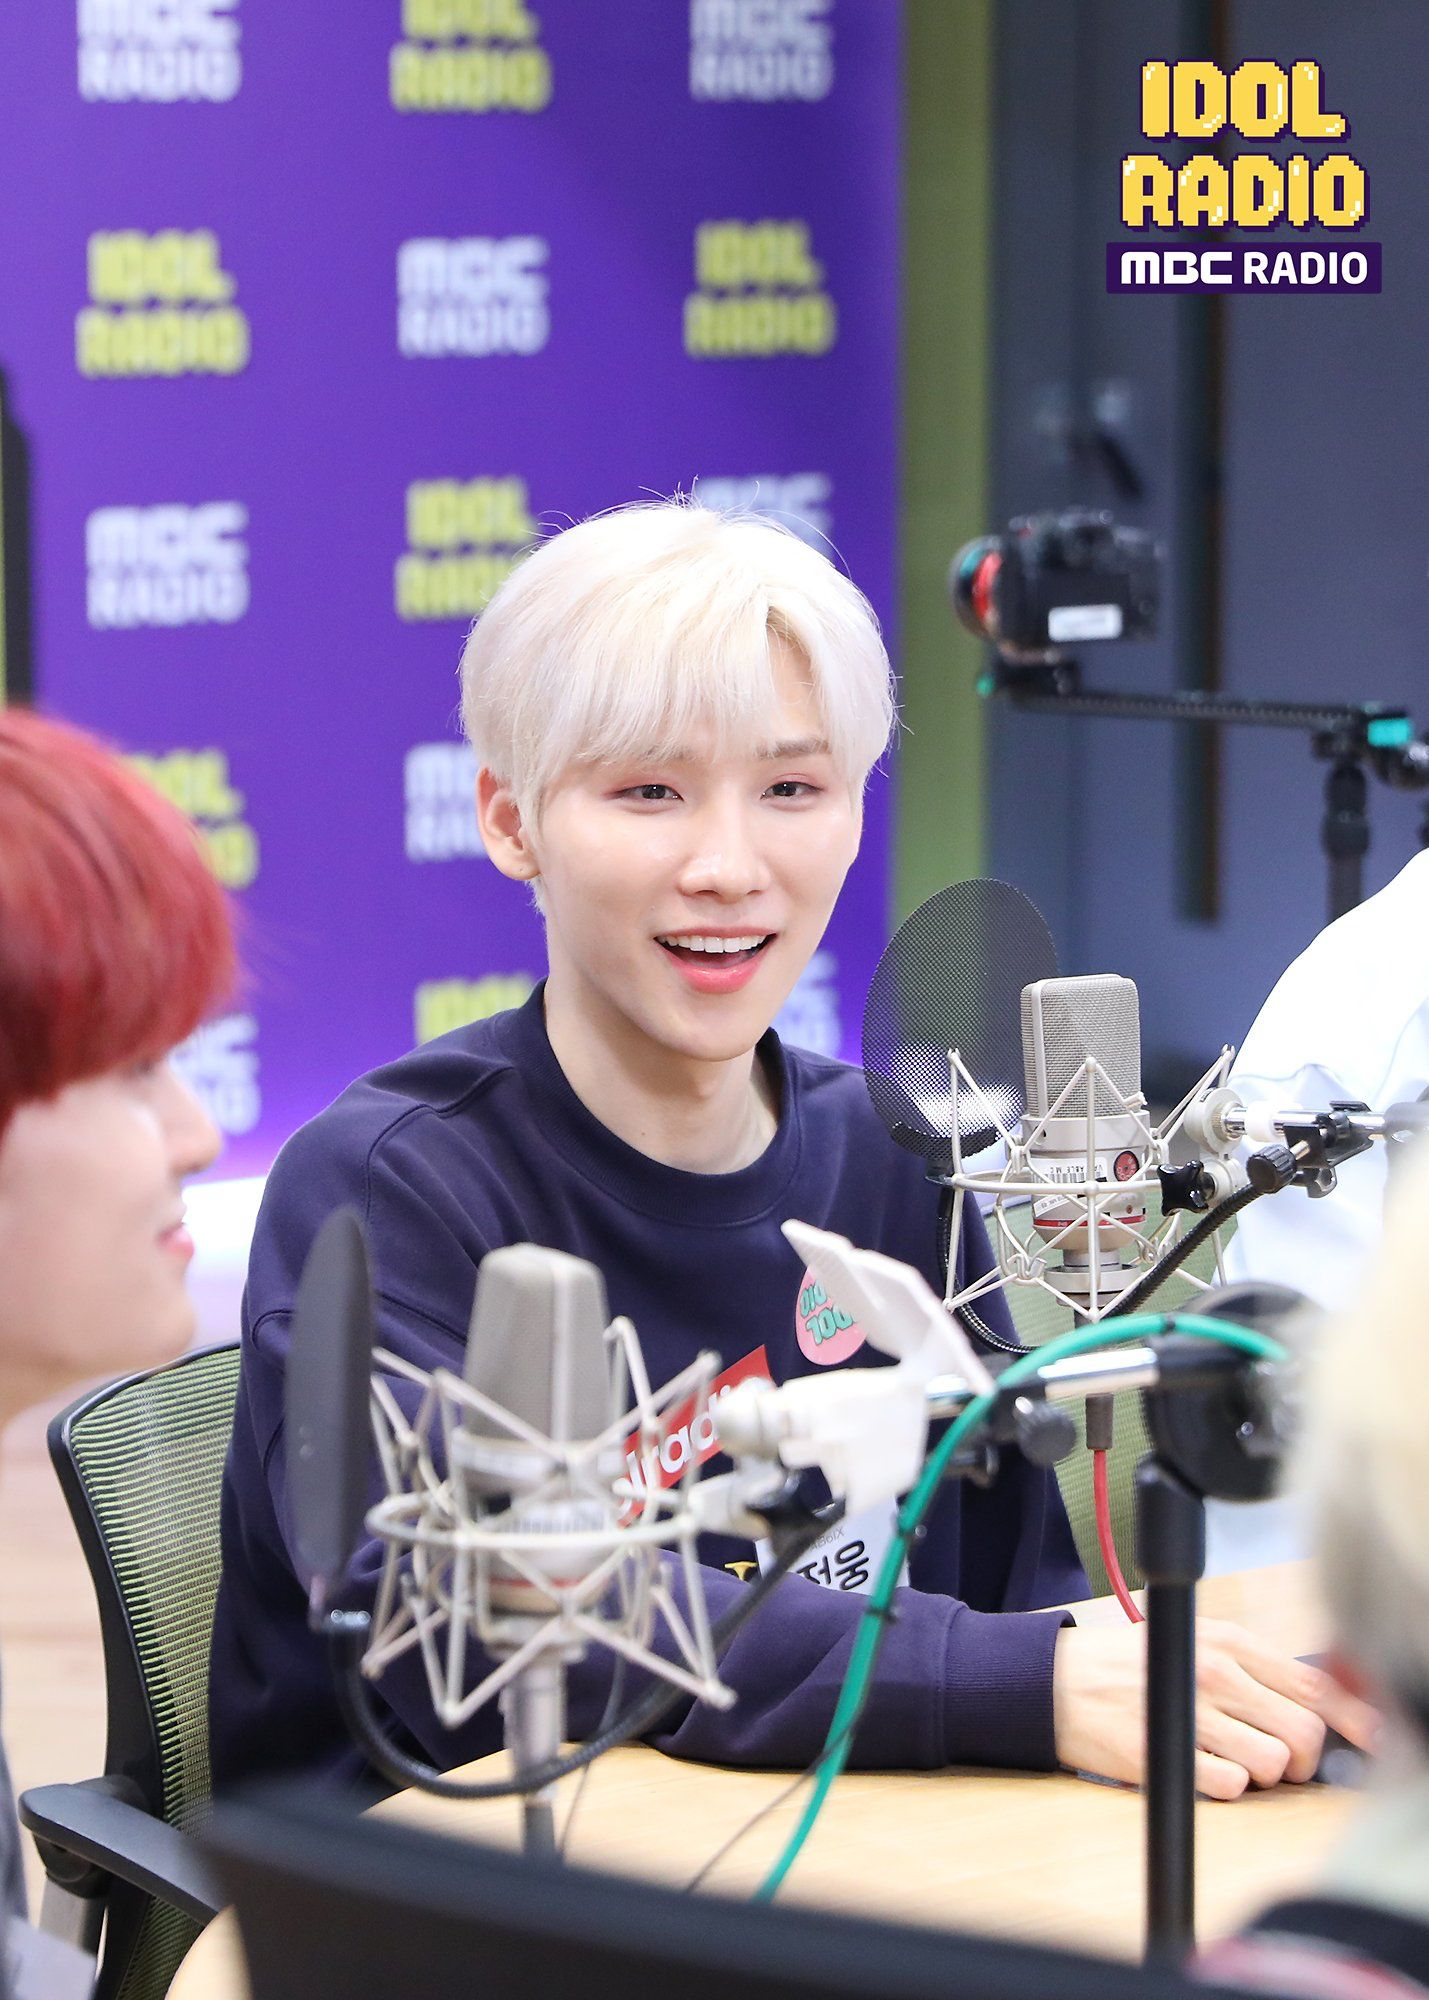 [PHOTO] Idol Radio with AB6IX 190523 ©idolradiokorea